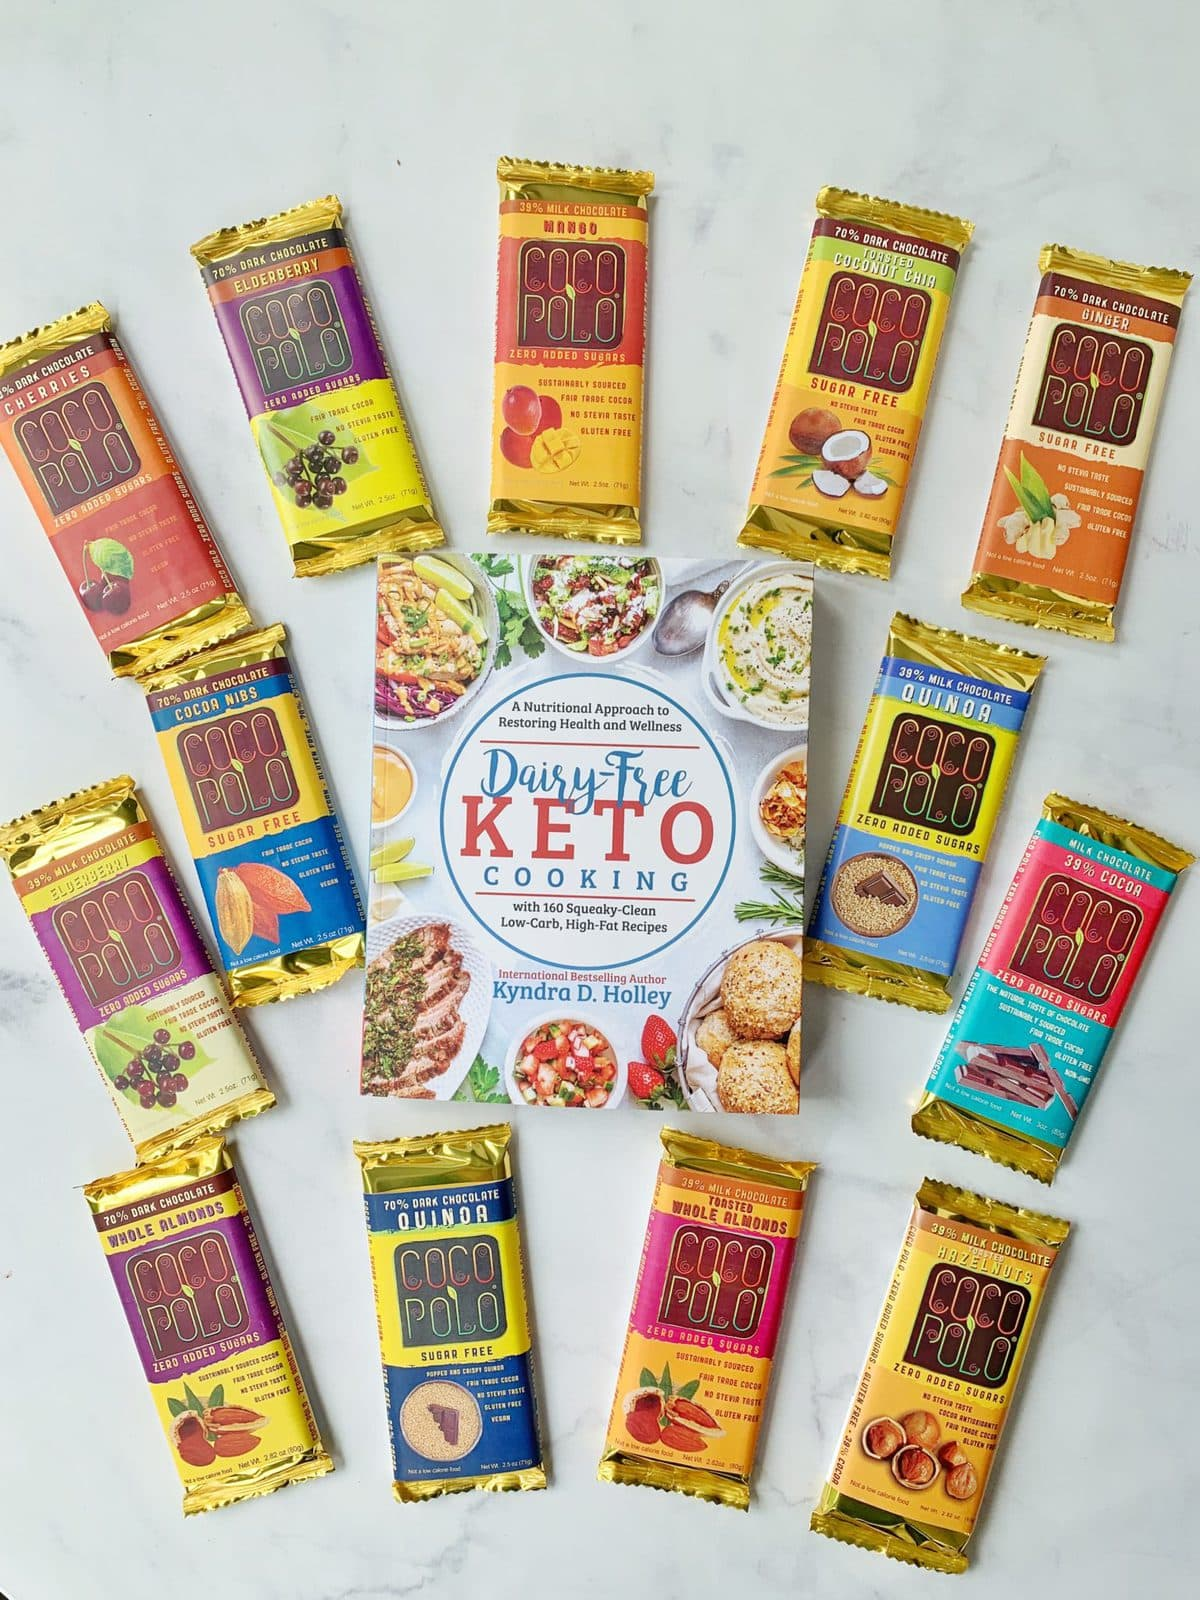 Dairy Free Keto Cooking GIVEAWAY Extravaganza - 11 Weeks of giveaways for the launch of my new book. Coco Polo Chocolate